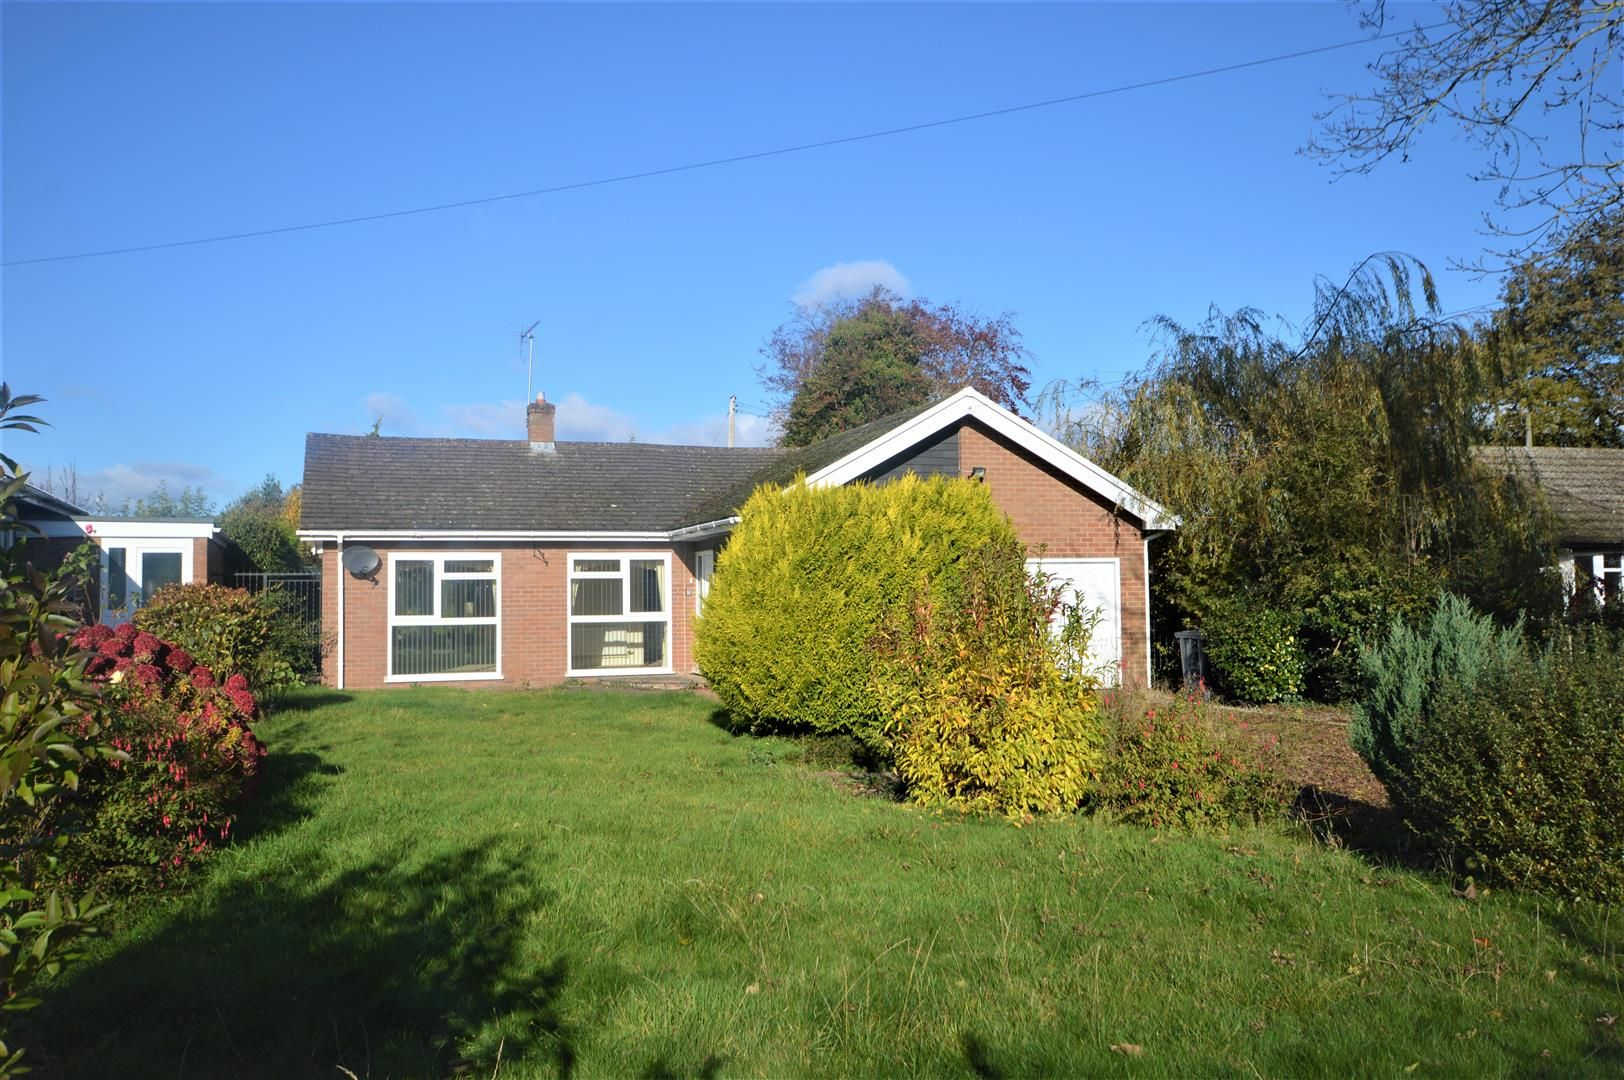 3 bed detached-bungalow for sale in Leominster - Property Image 1